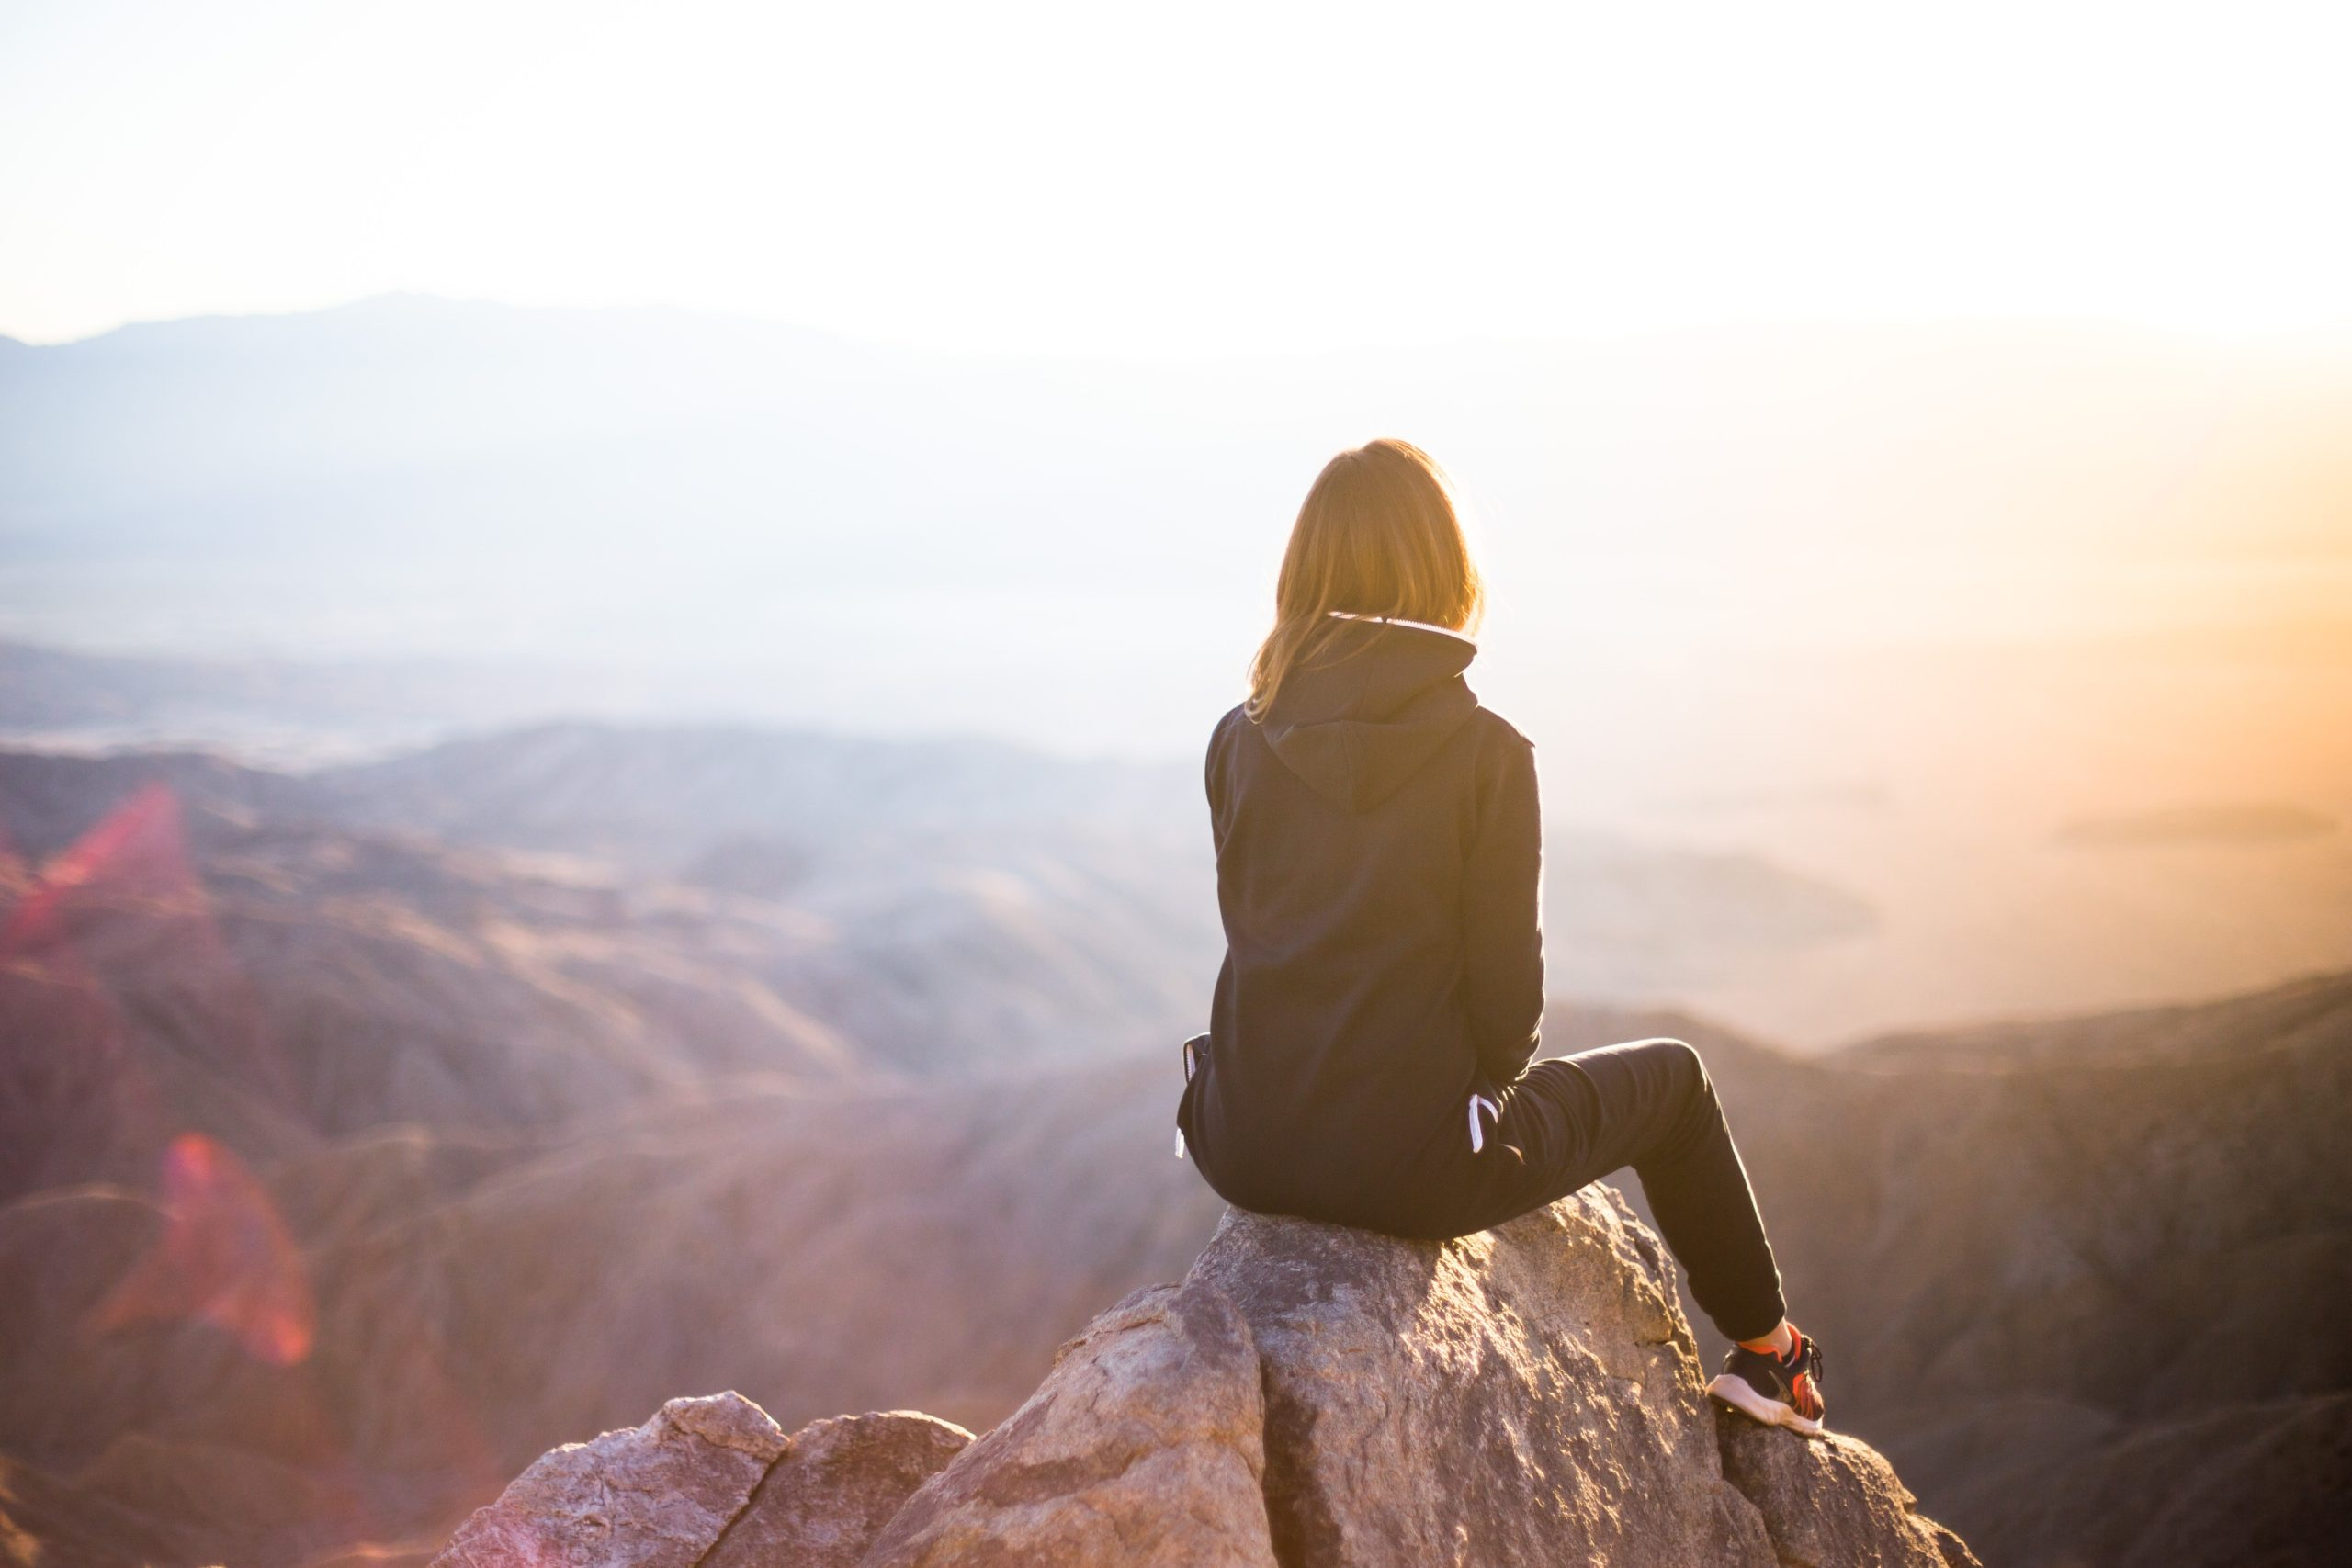 A woman's back is visible as she sits on a rock looking at the mountain range with sun falling